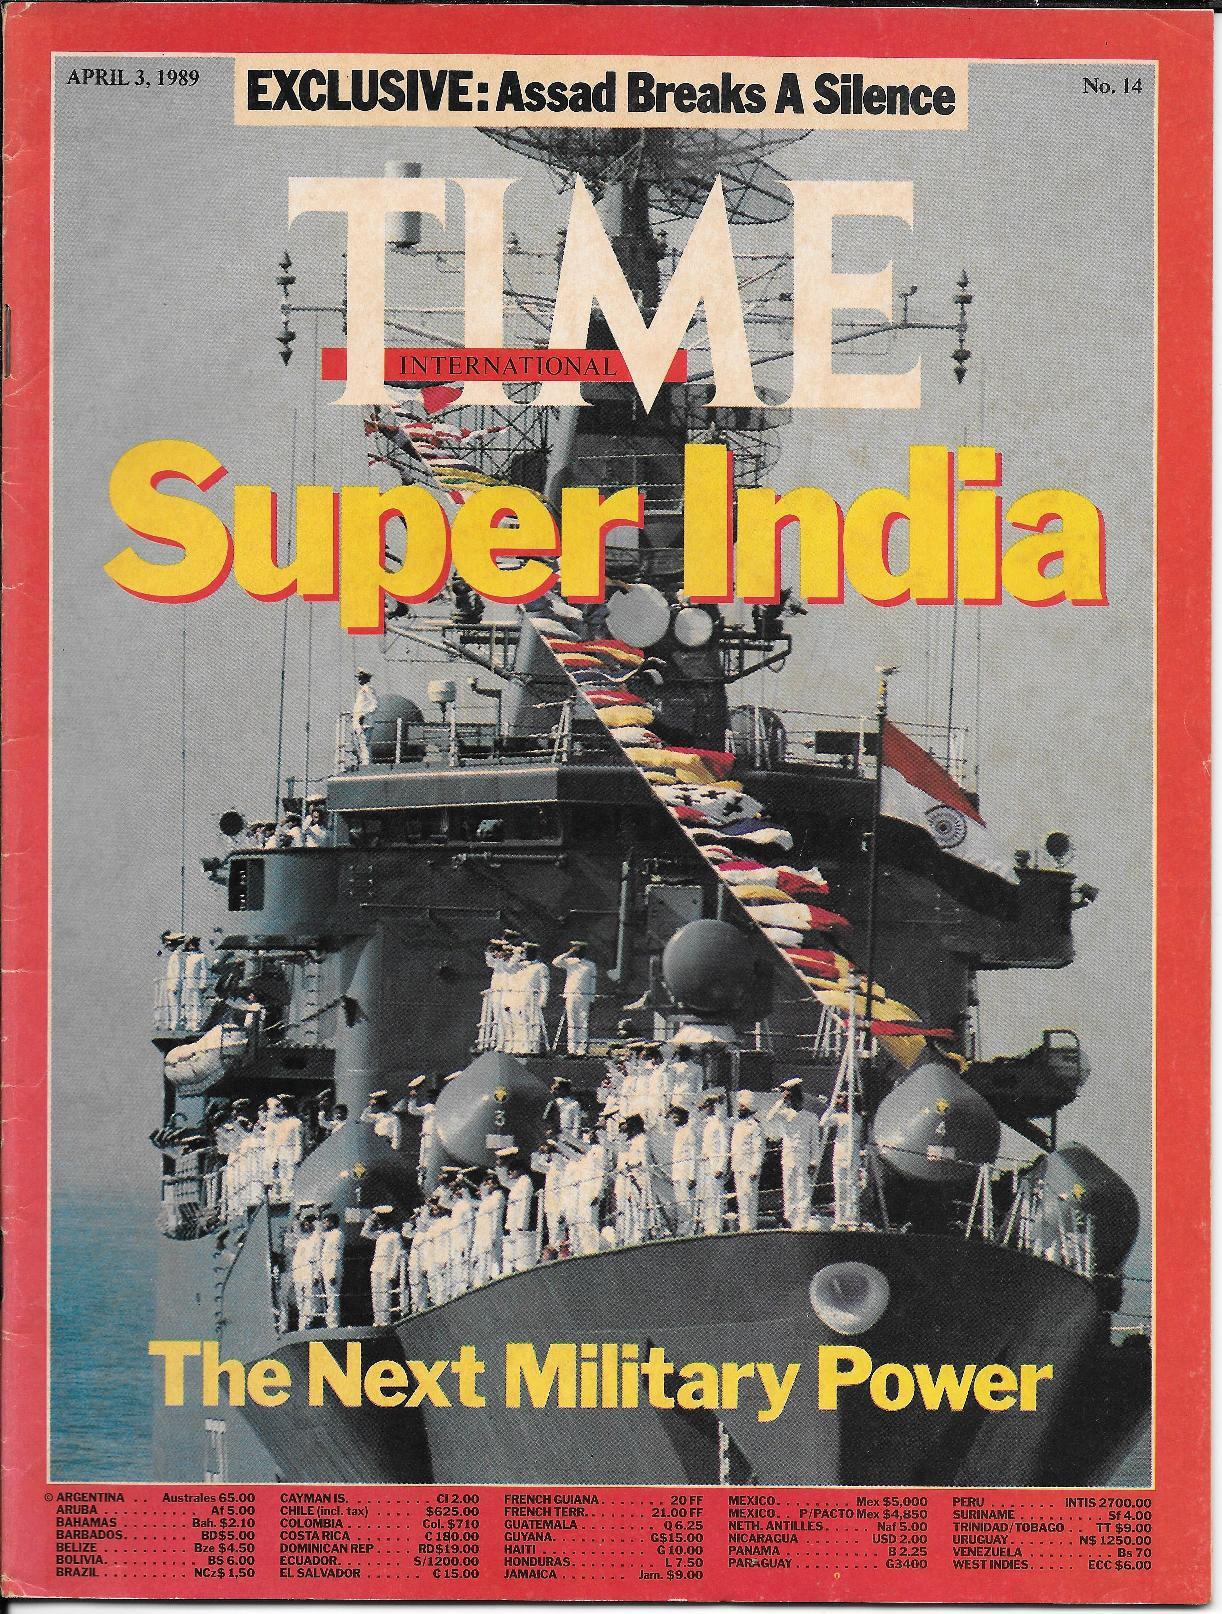 The April 3, 1989 edition of Time magazine recognised India's overseas missions and capability, much to Prime Minister Rajiv Gandhi's pleasure.